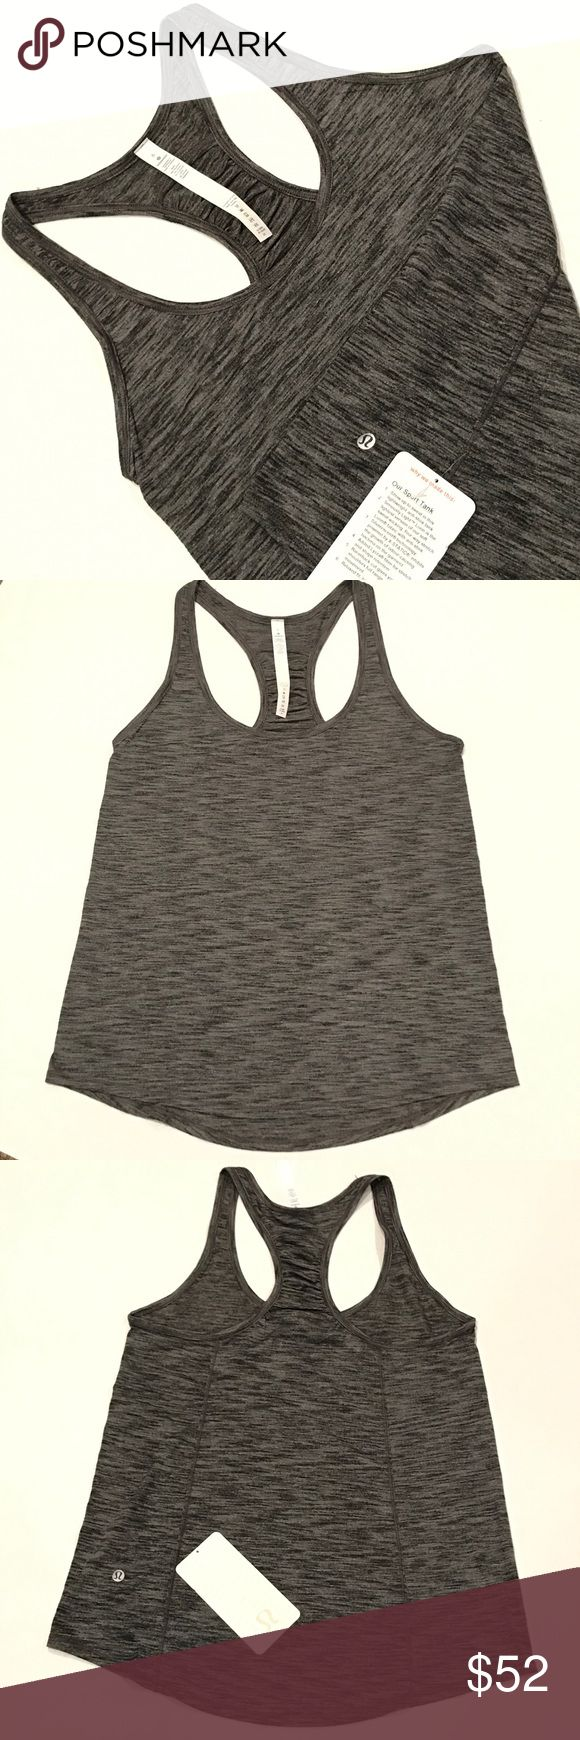 NWT Lululemon Our Sport Tank - Size 6 NWT Lululemon Our Sport Tank - Size 6 Heathered Gray. Fabric: Seriously Light™ Luon SOLD OUT ONLINE. PRICE FIRM! lululemon athletica Tops Tank Tops